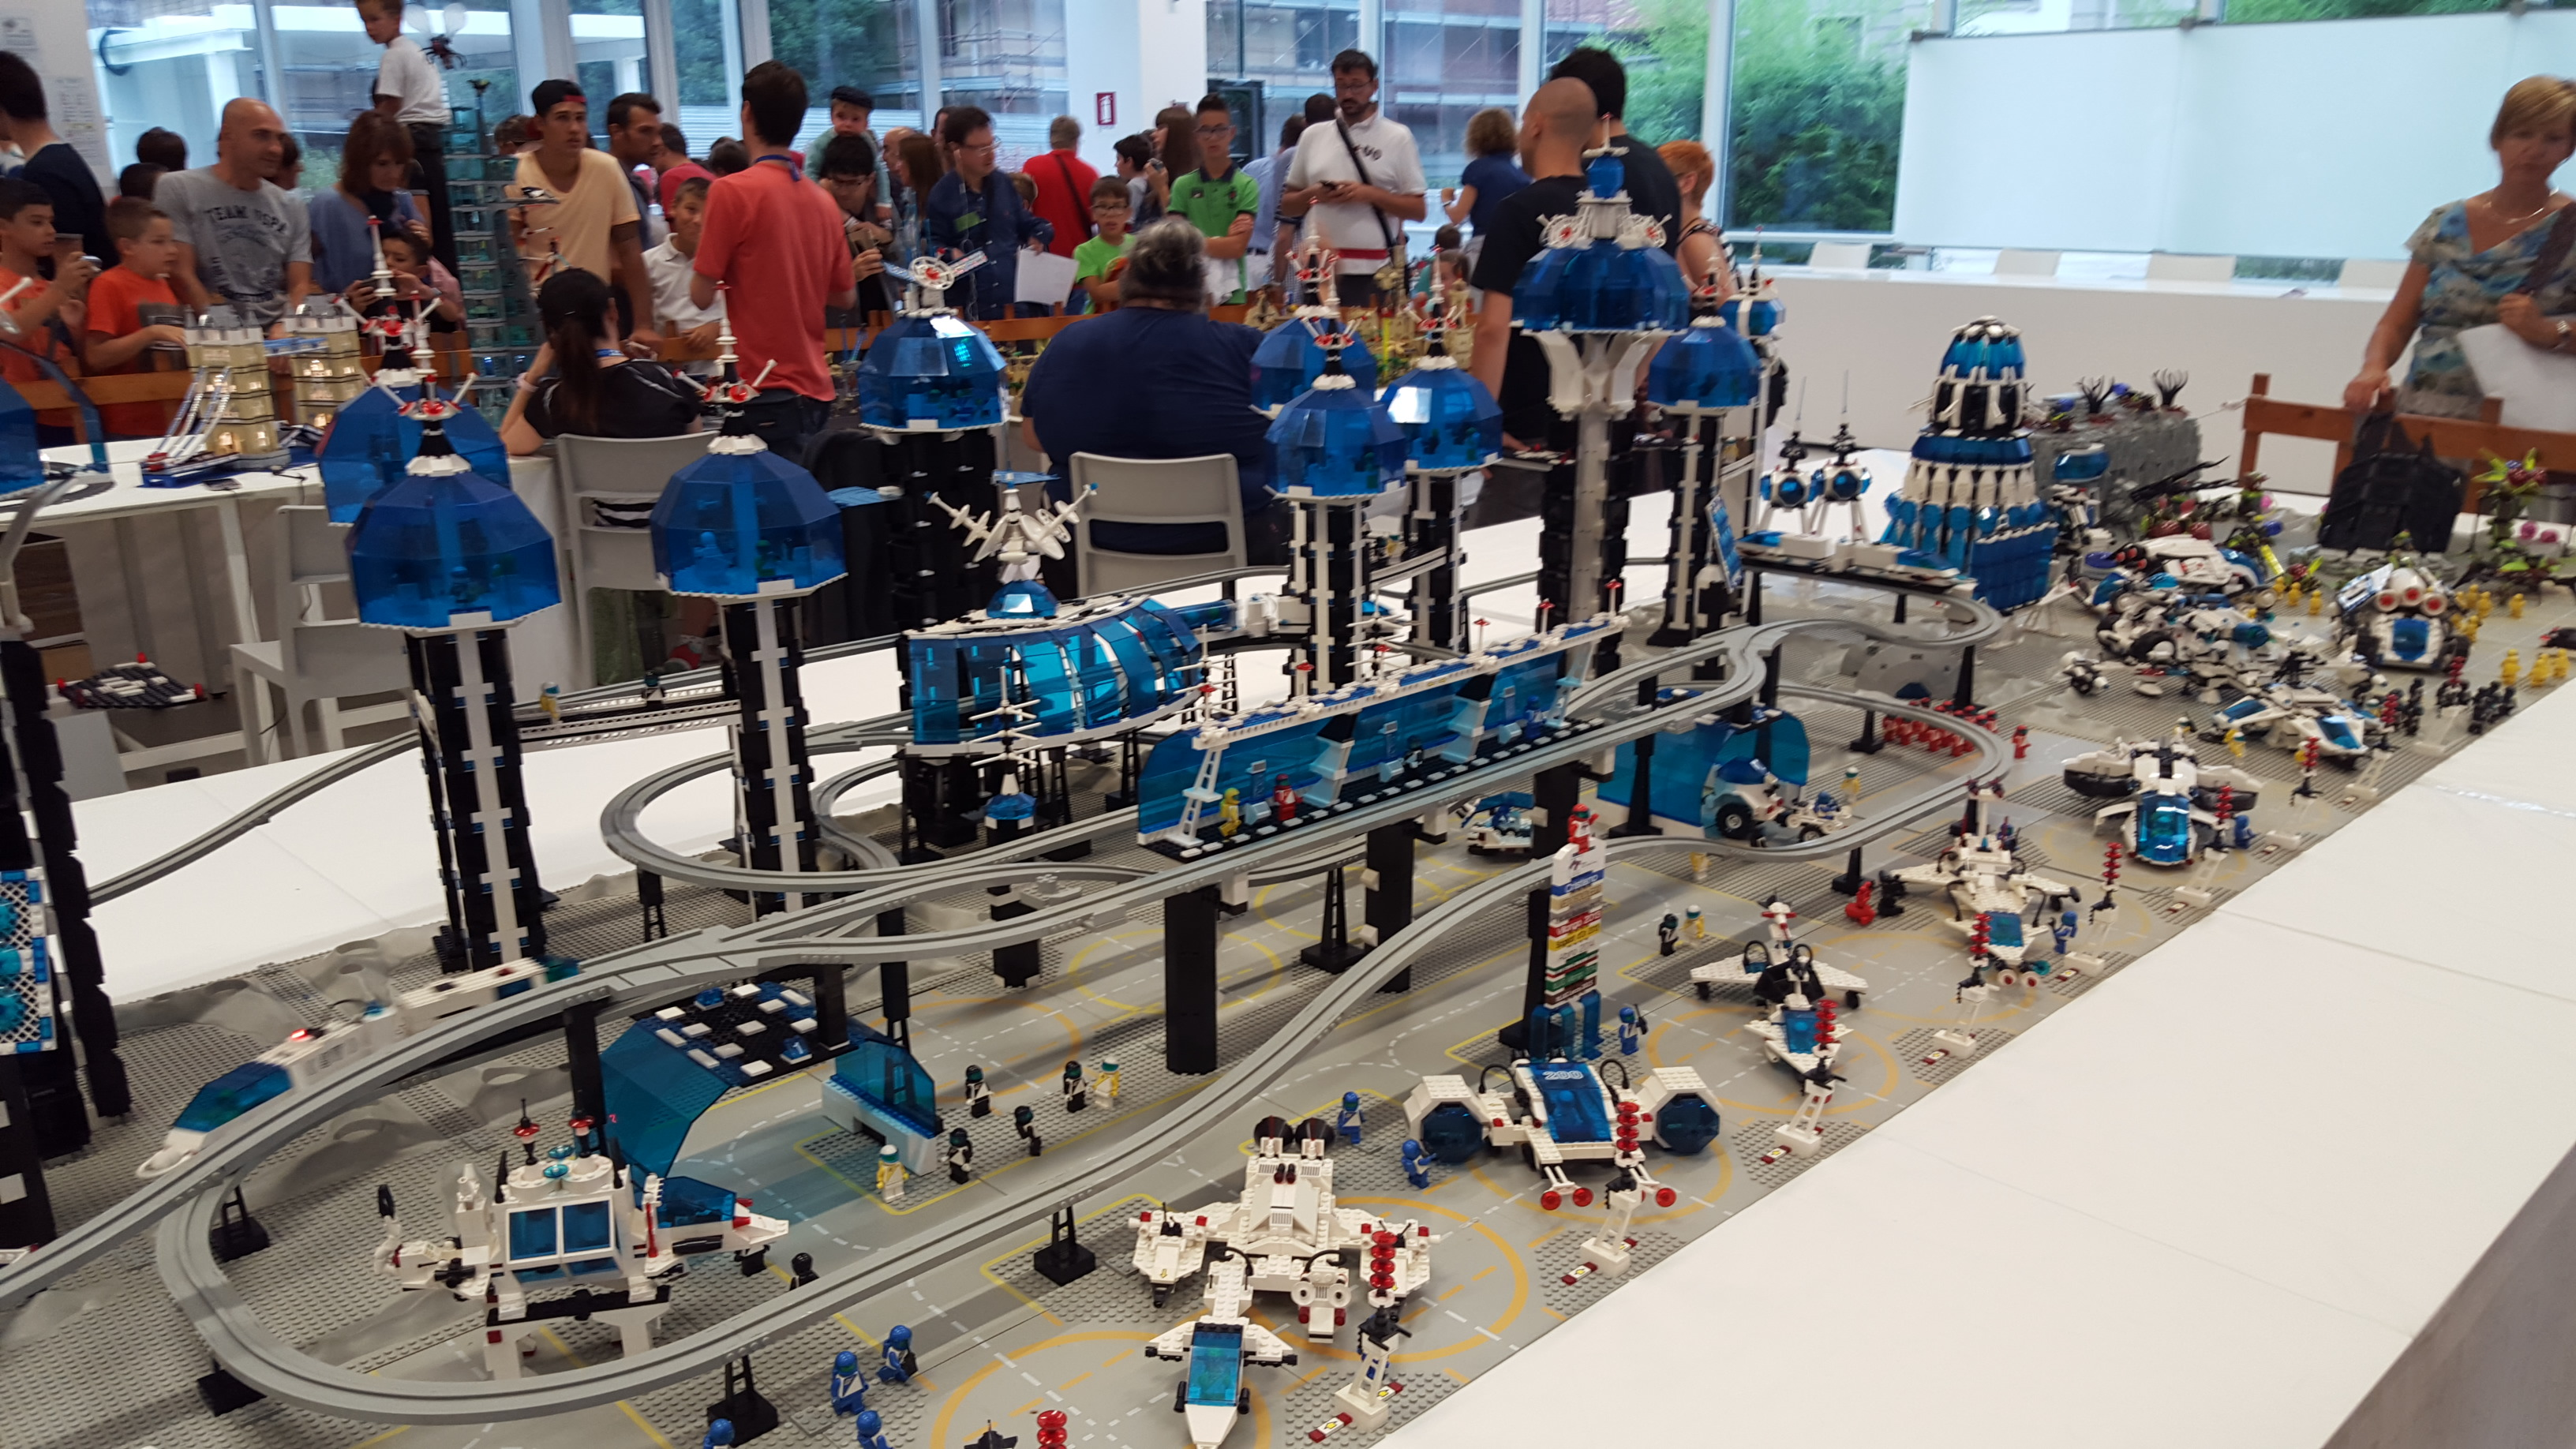 http://lecconews.lc/wp/wp-content/uploads/2015/08/MOSTRA-LEGO-58.jpg